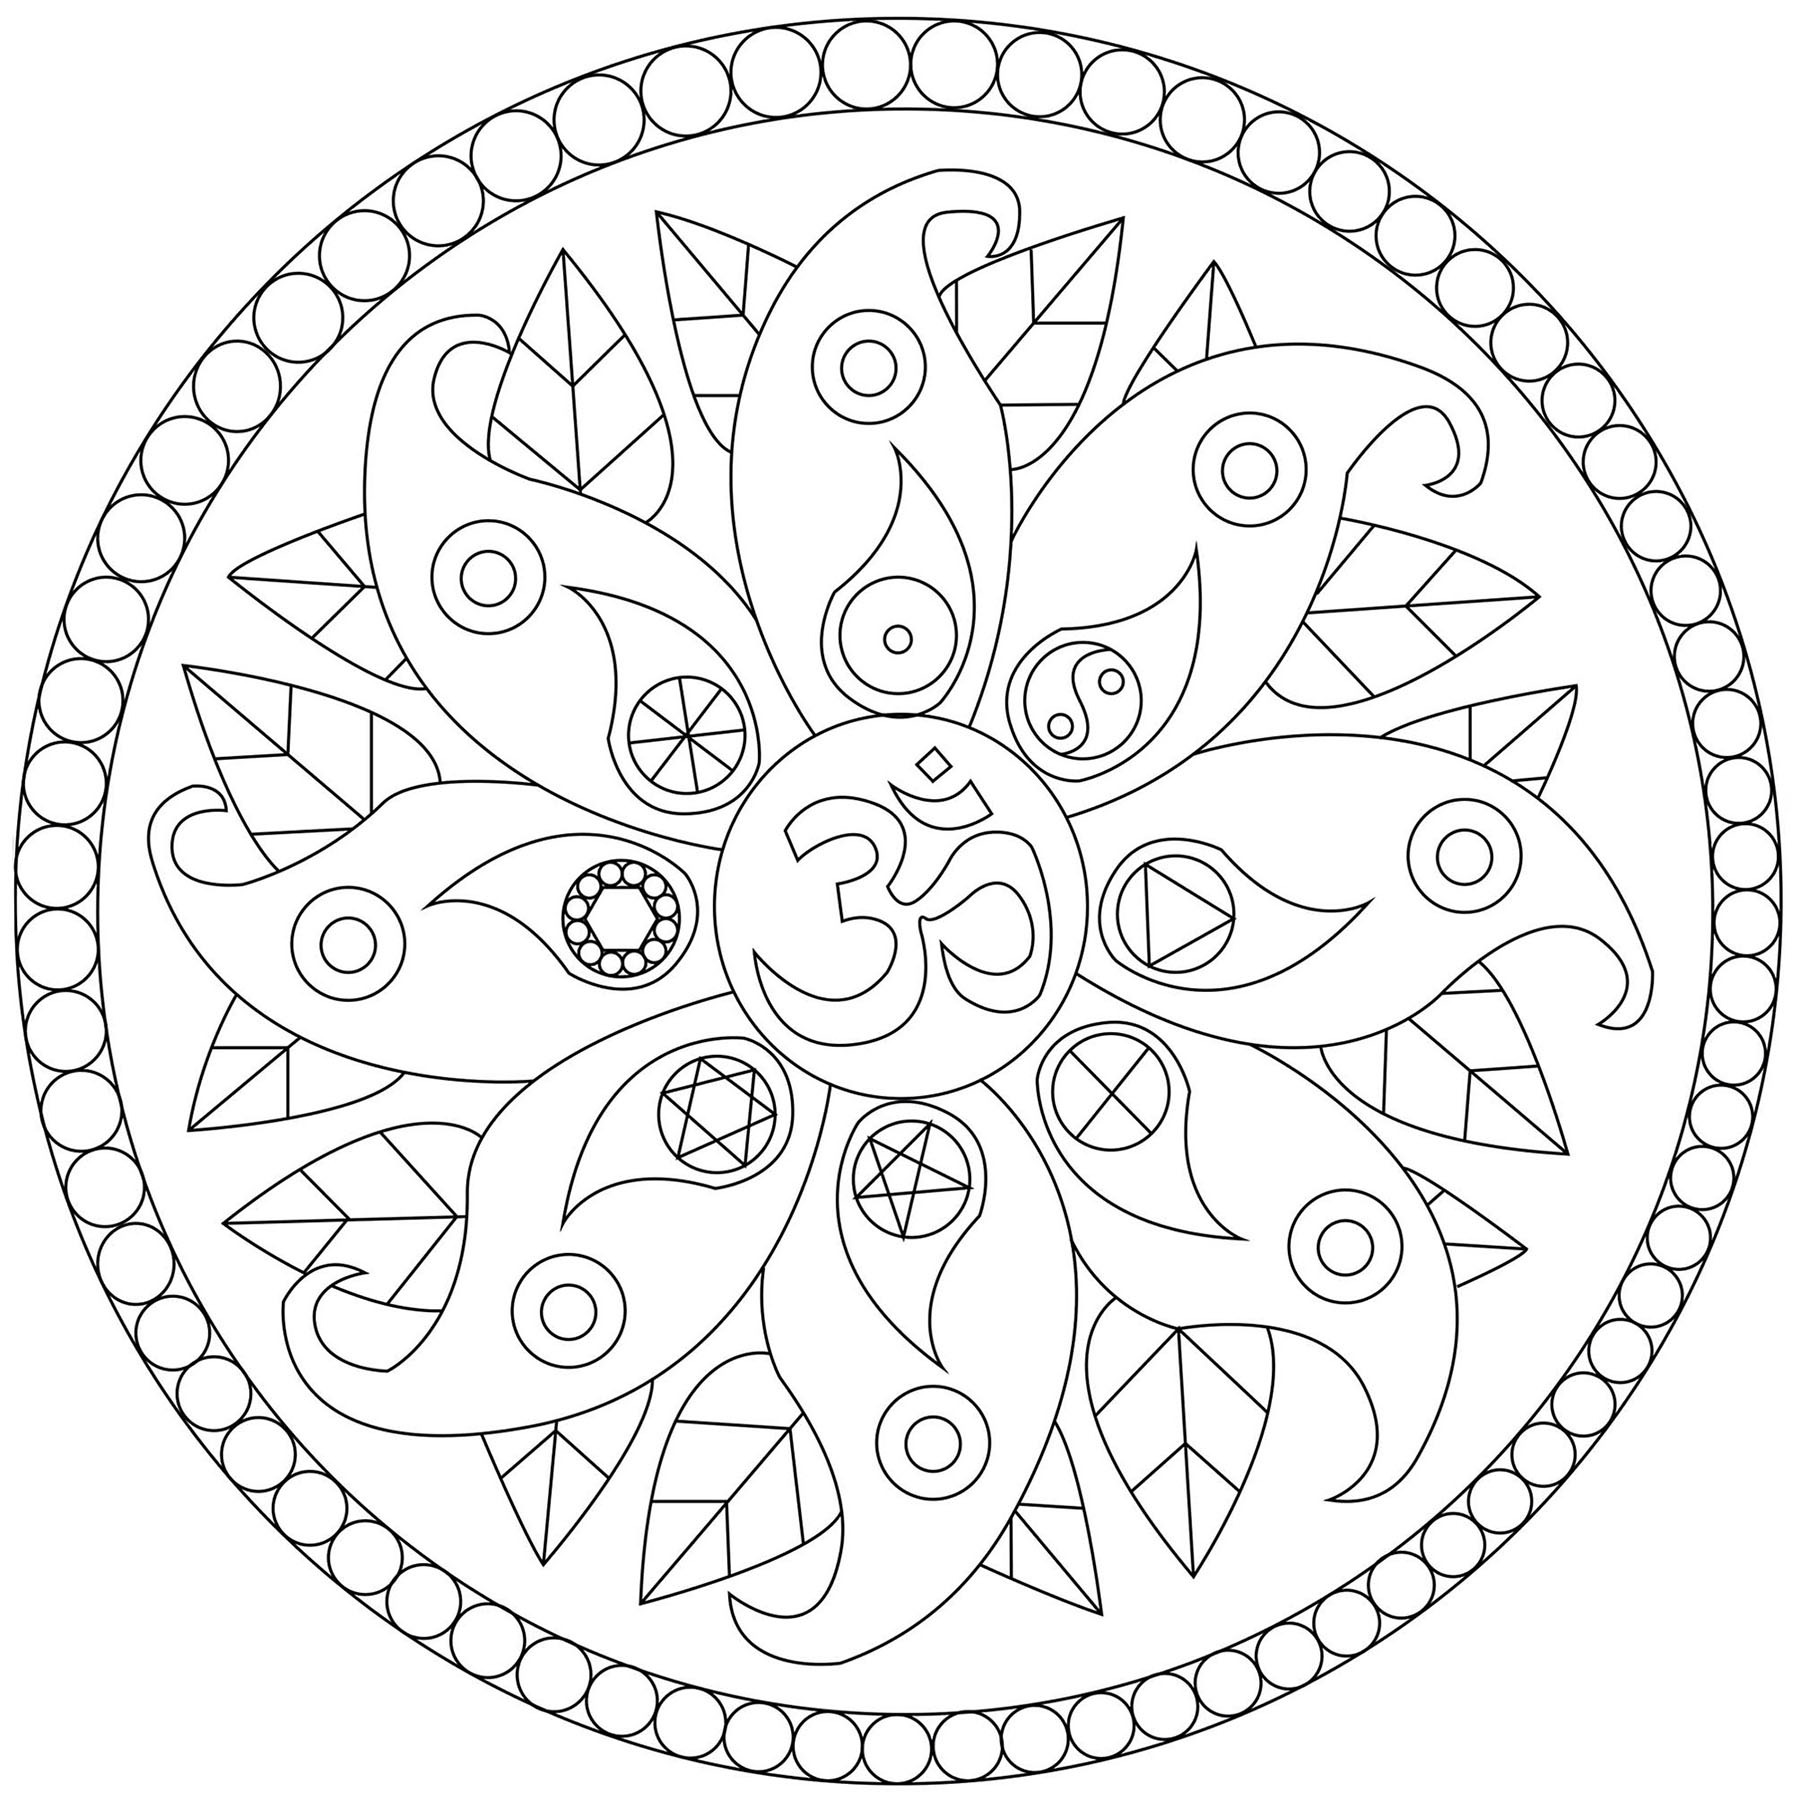 Easy free Mandalas coloring page to download